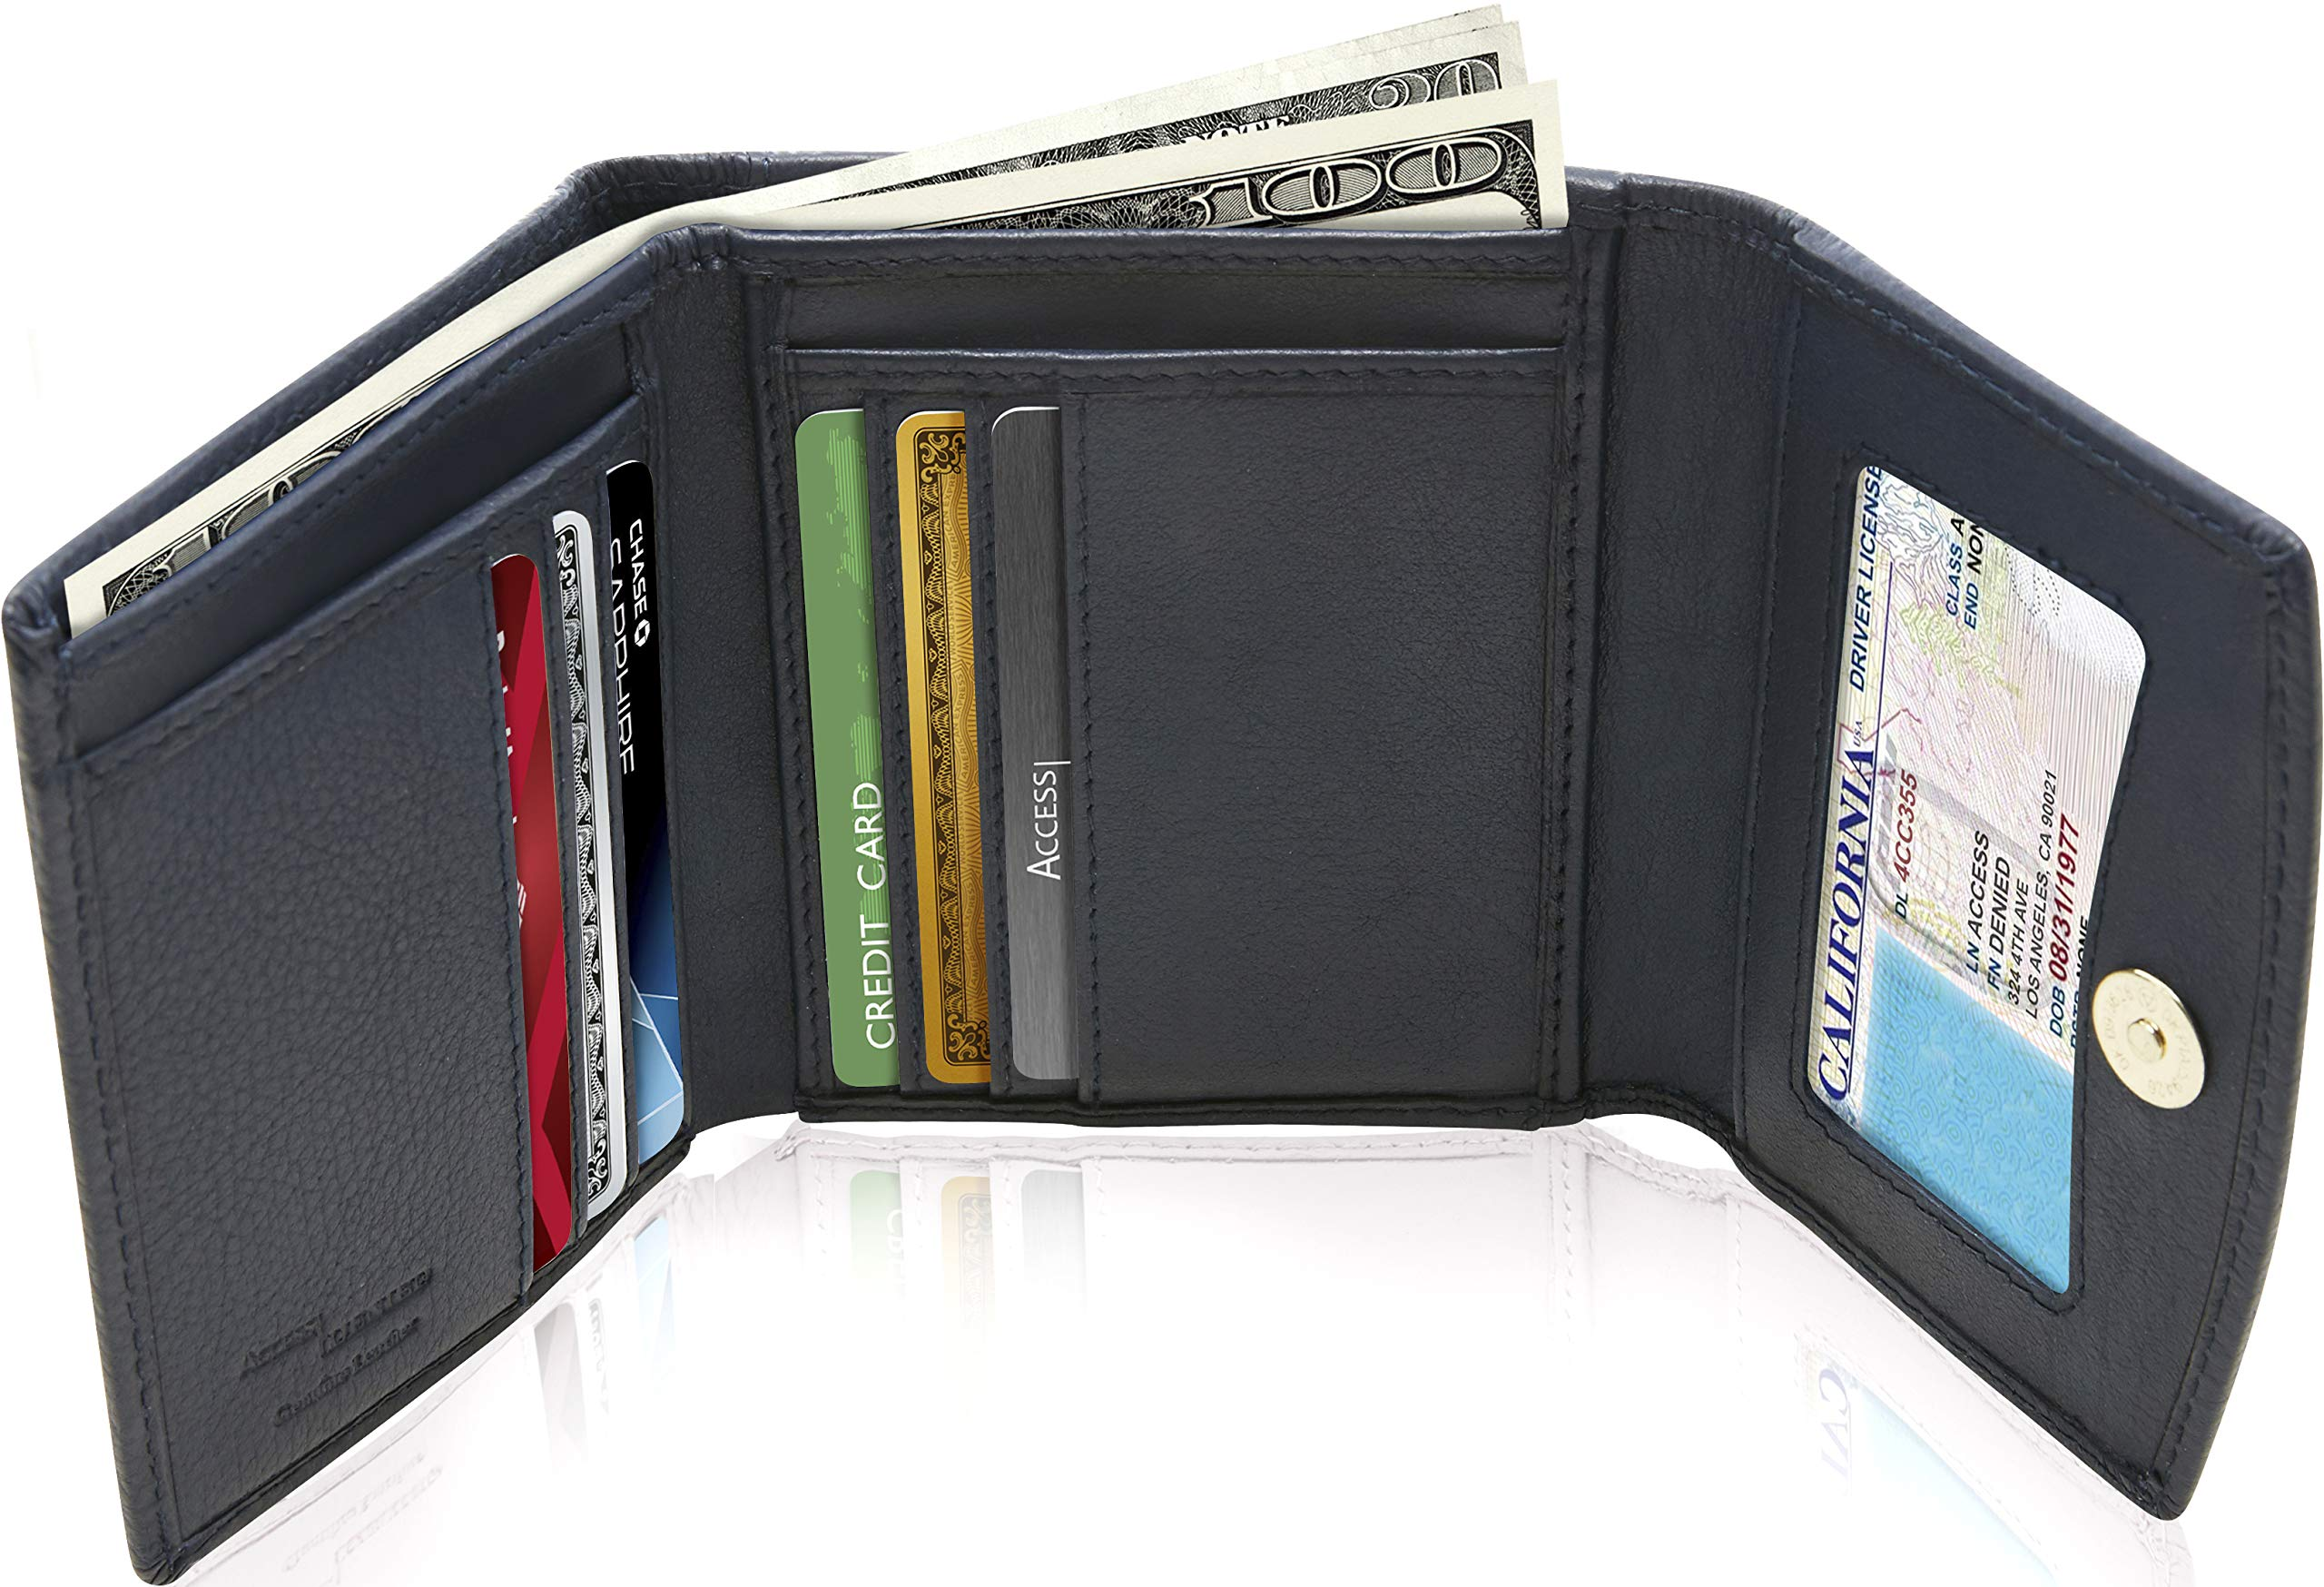 Small Trifold Wallets For Women RFID Blocking - Genuine Leather Credit Card Holder With Coin Purse